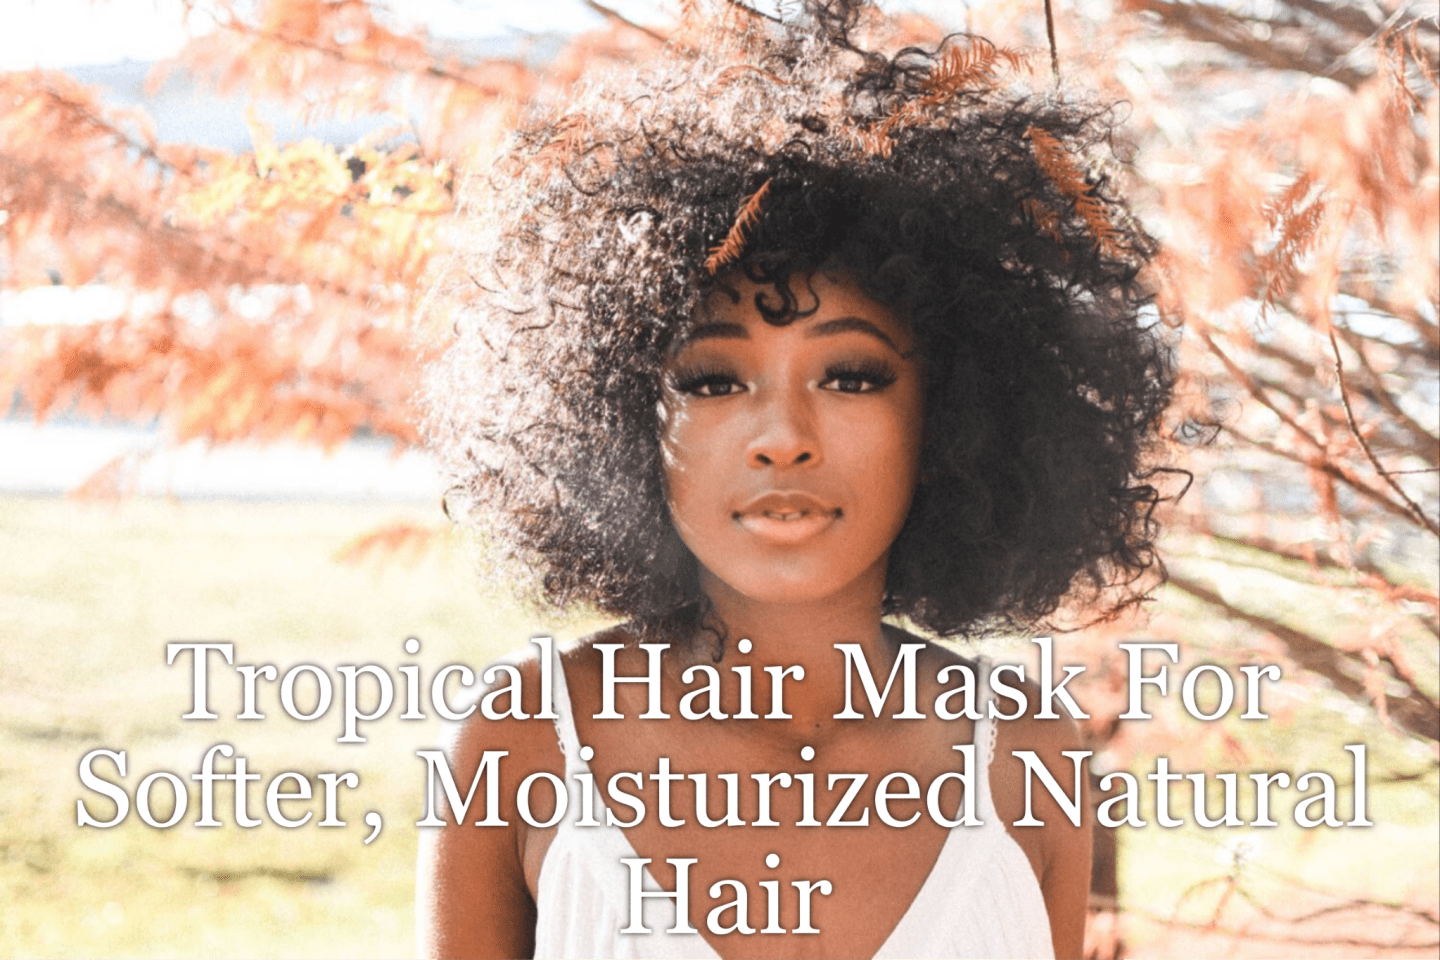 Tropical Hair Mask For Softer, Moisturized Natural Hair. Take advanage of the juicy and popular fruits from nature to replenish moisture back into your hair